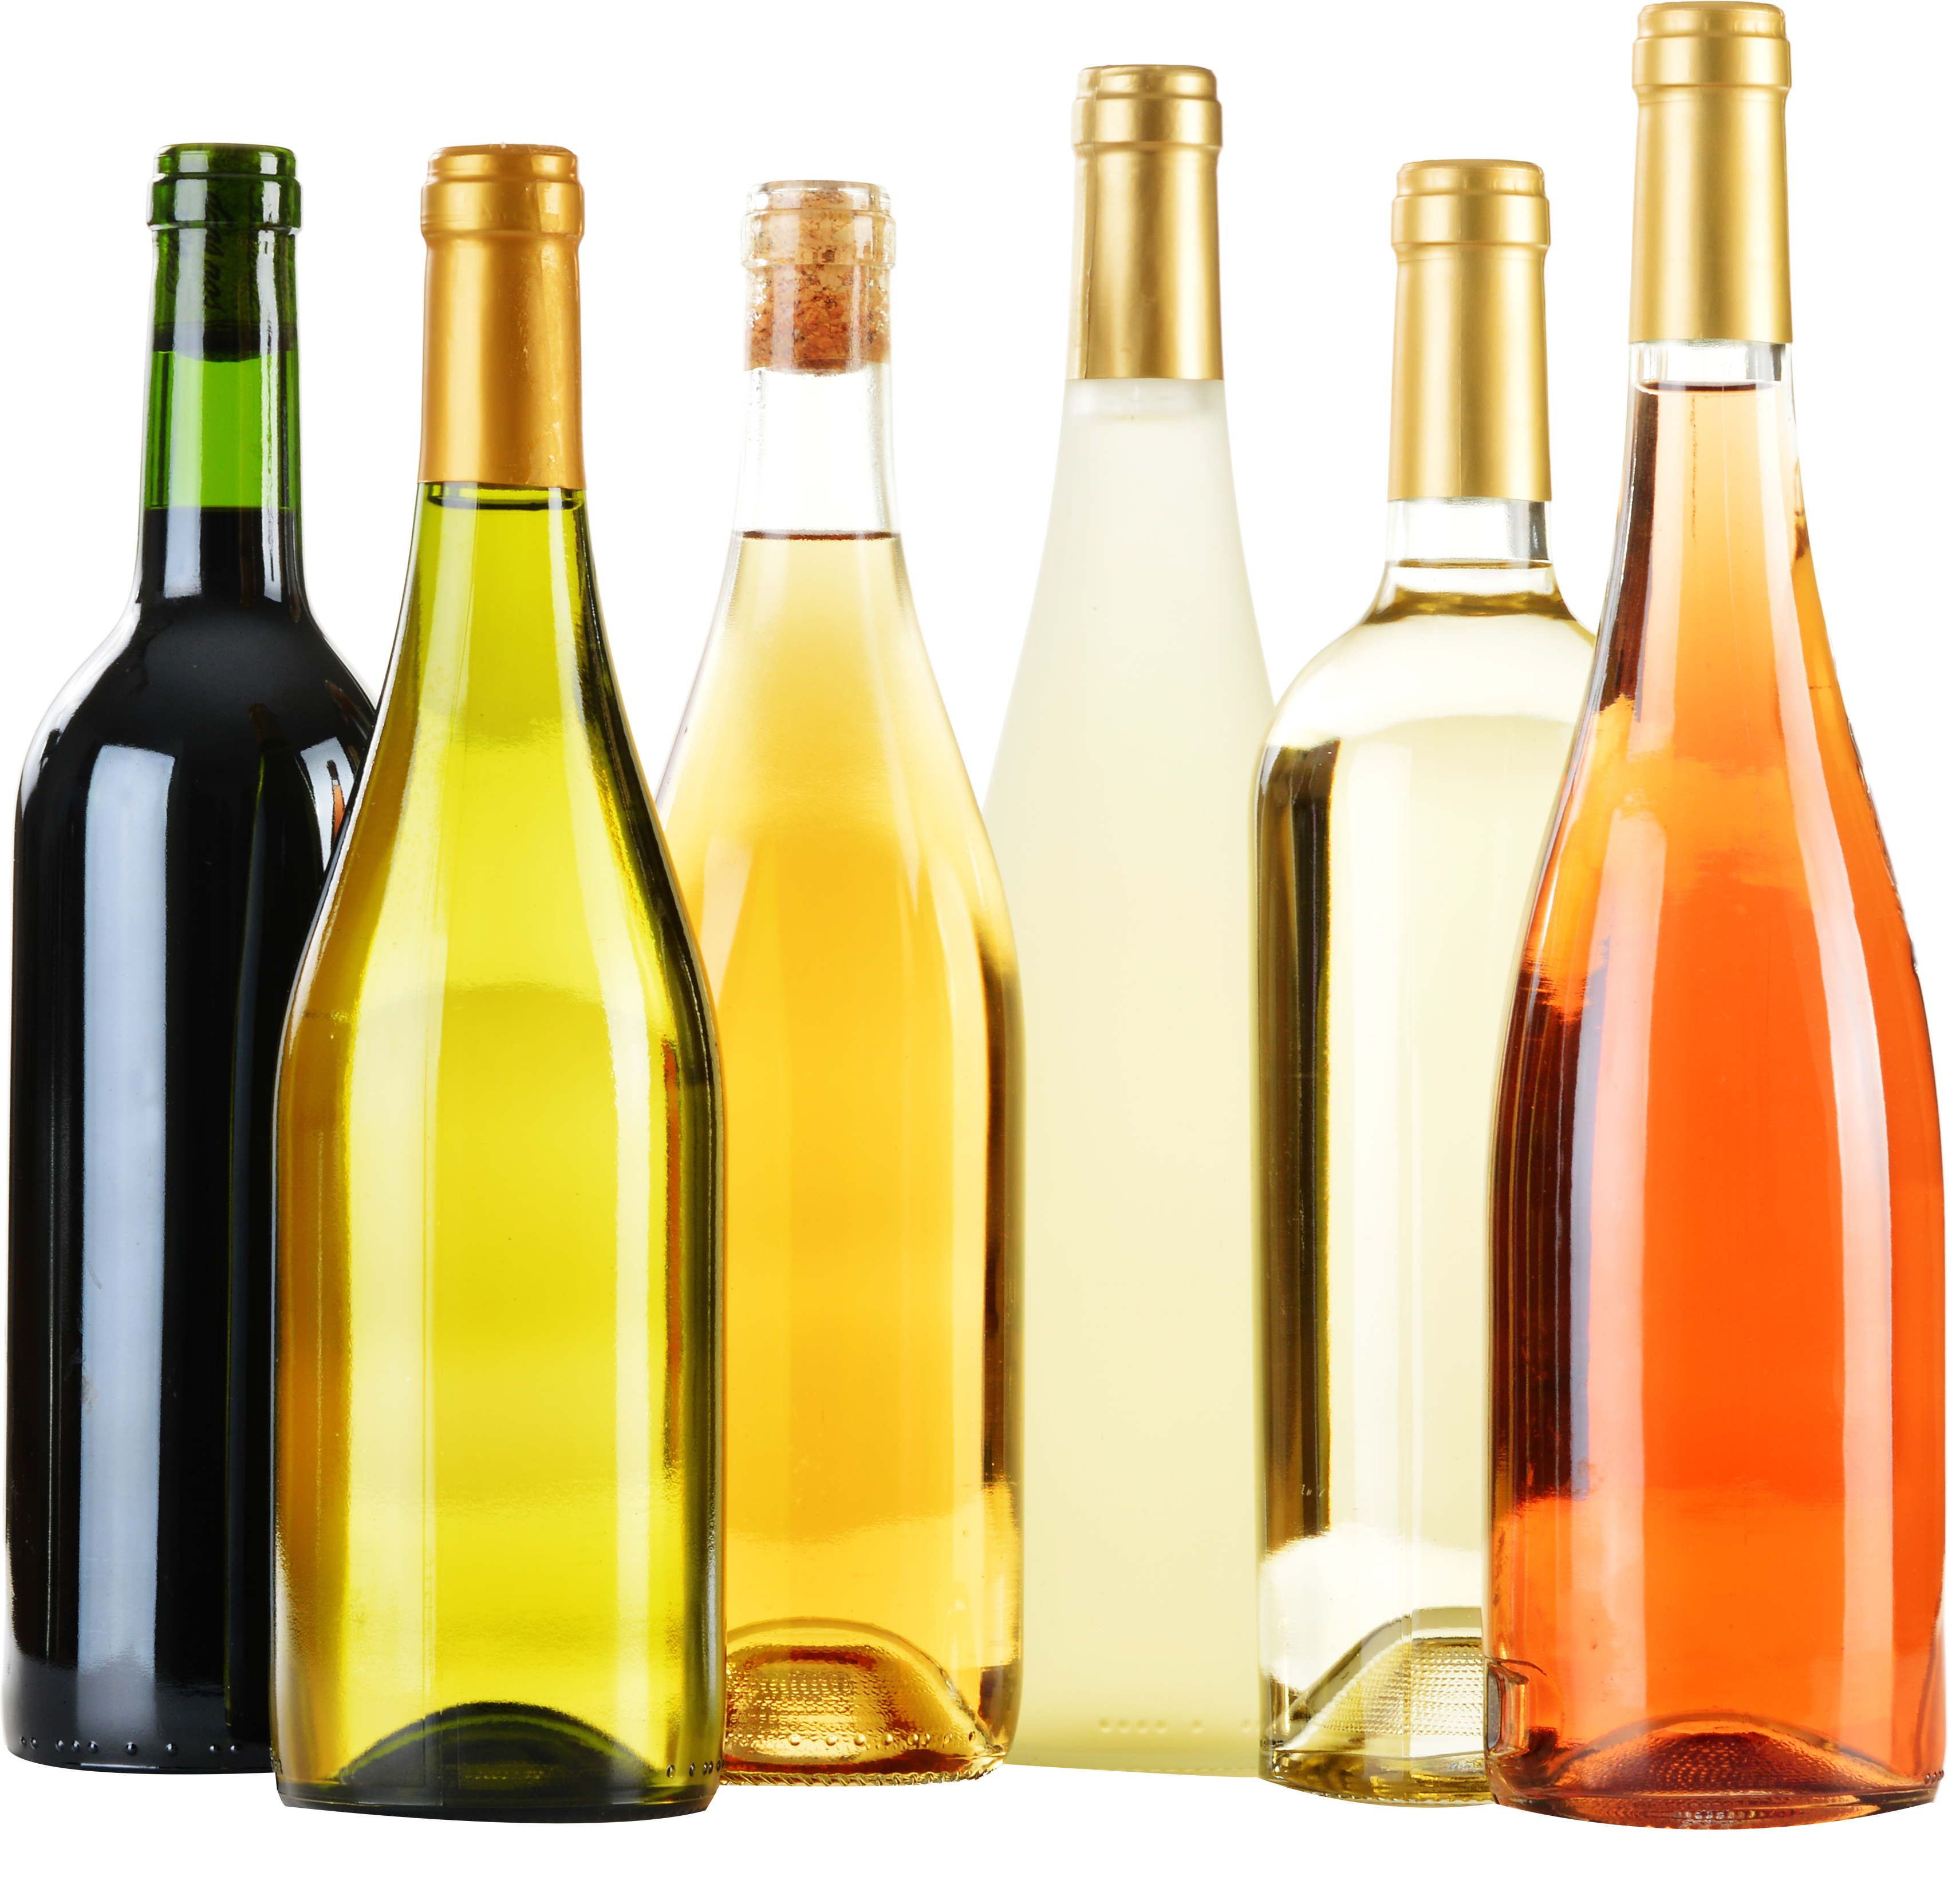 HD Wine Champagne Bottle Label Clip Art.